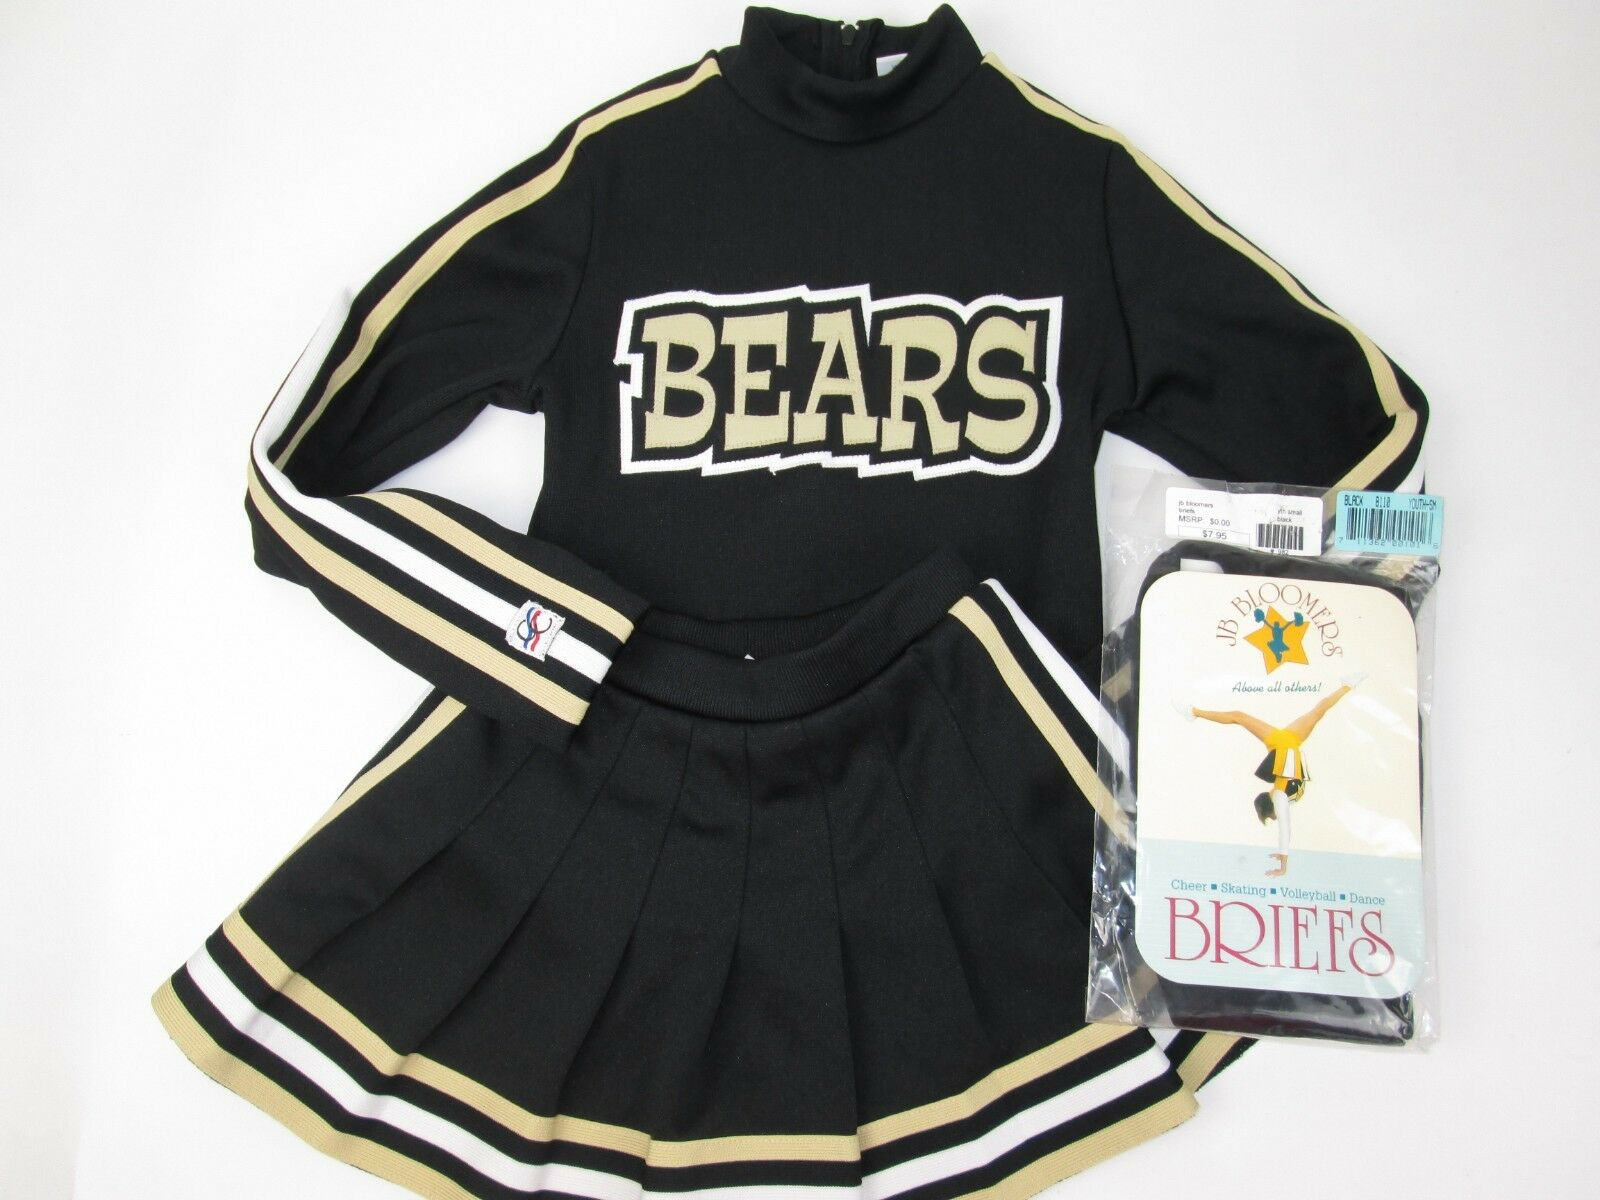 NEW  BEARS Cheerleader Uniform Outfit Costume  LD 26  Top Elastic Skirt +Briefs  wholesale